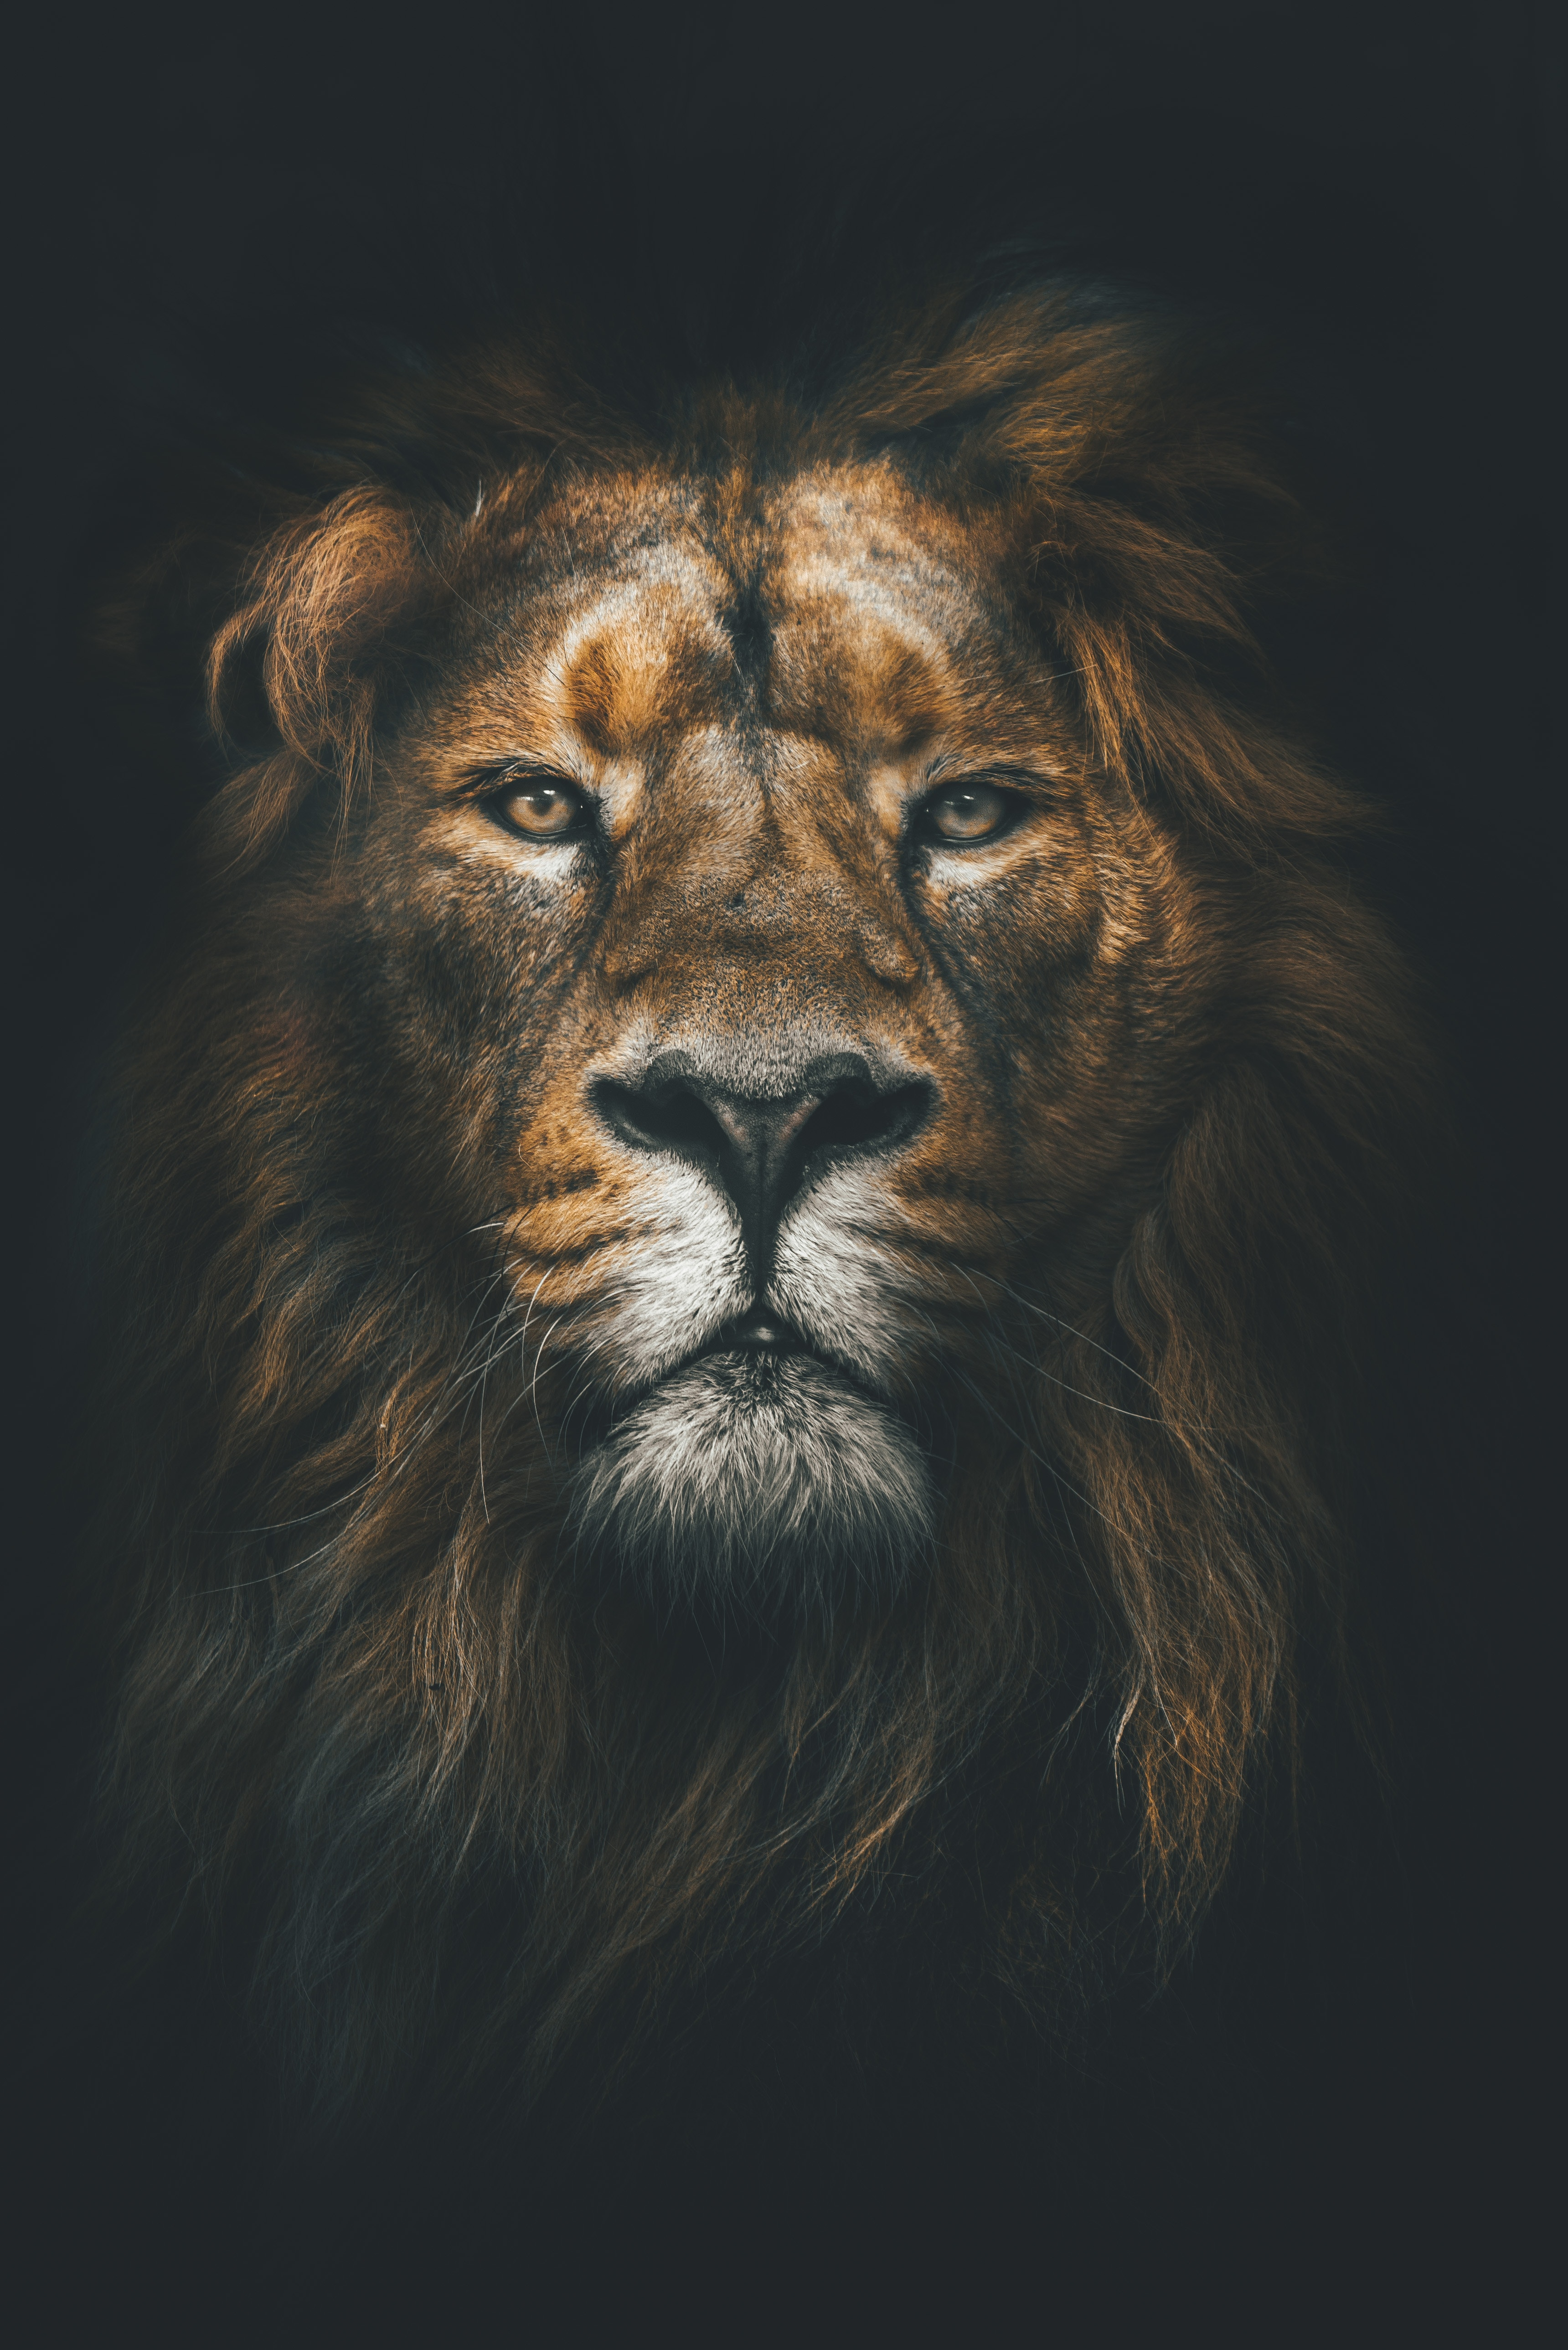 156199 download wallpaper Animals, Lion, Muzzle, Mane, Sight, Opinion, Predator screensavers and pictures for free